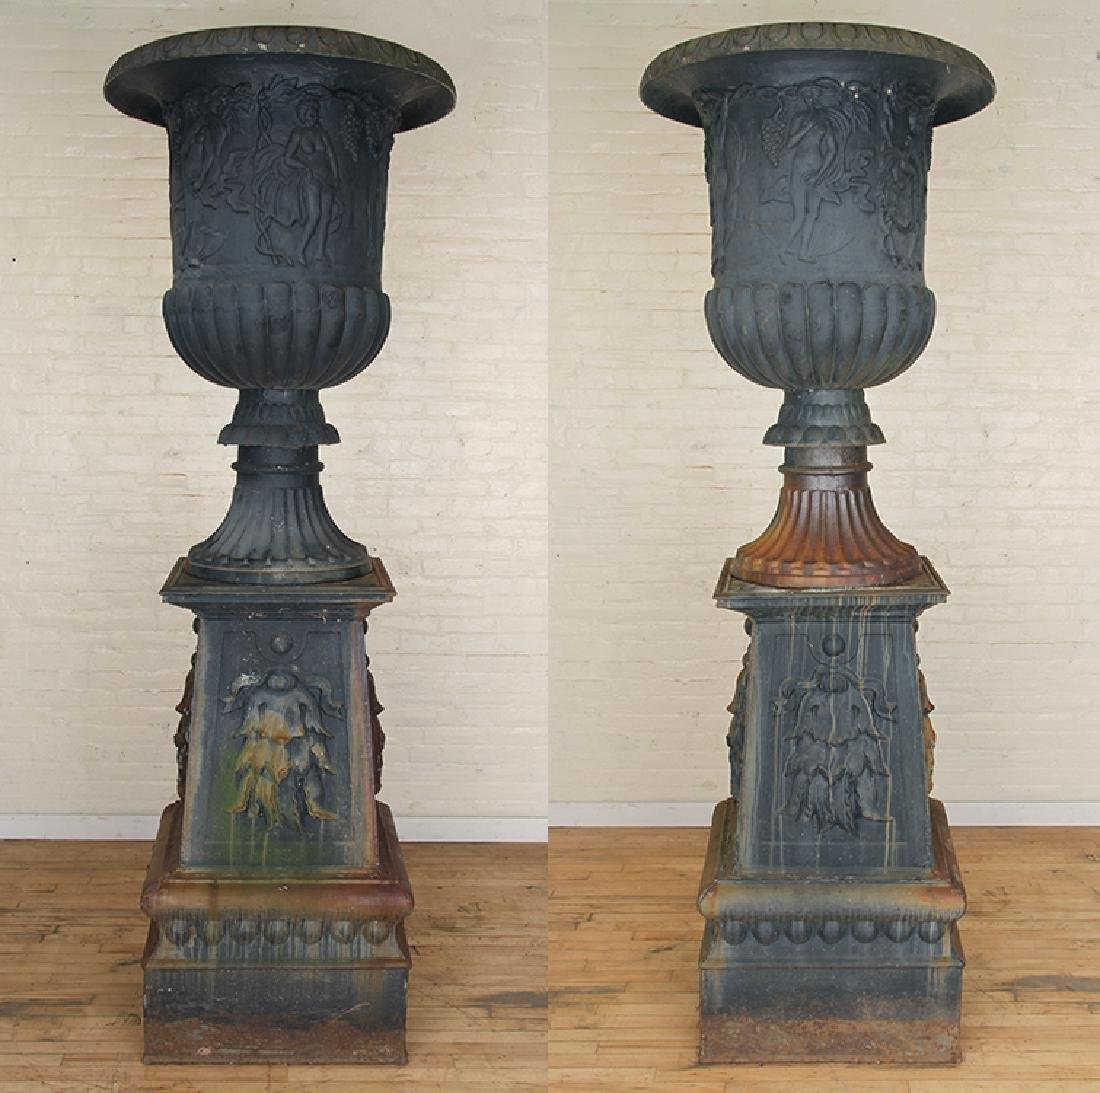 PAIR MONUMENTAL CAST IRON URNS NEOCLASSICAL